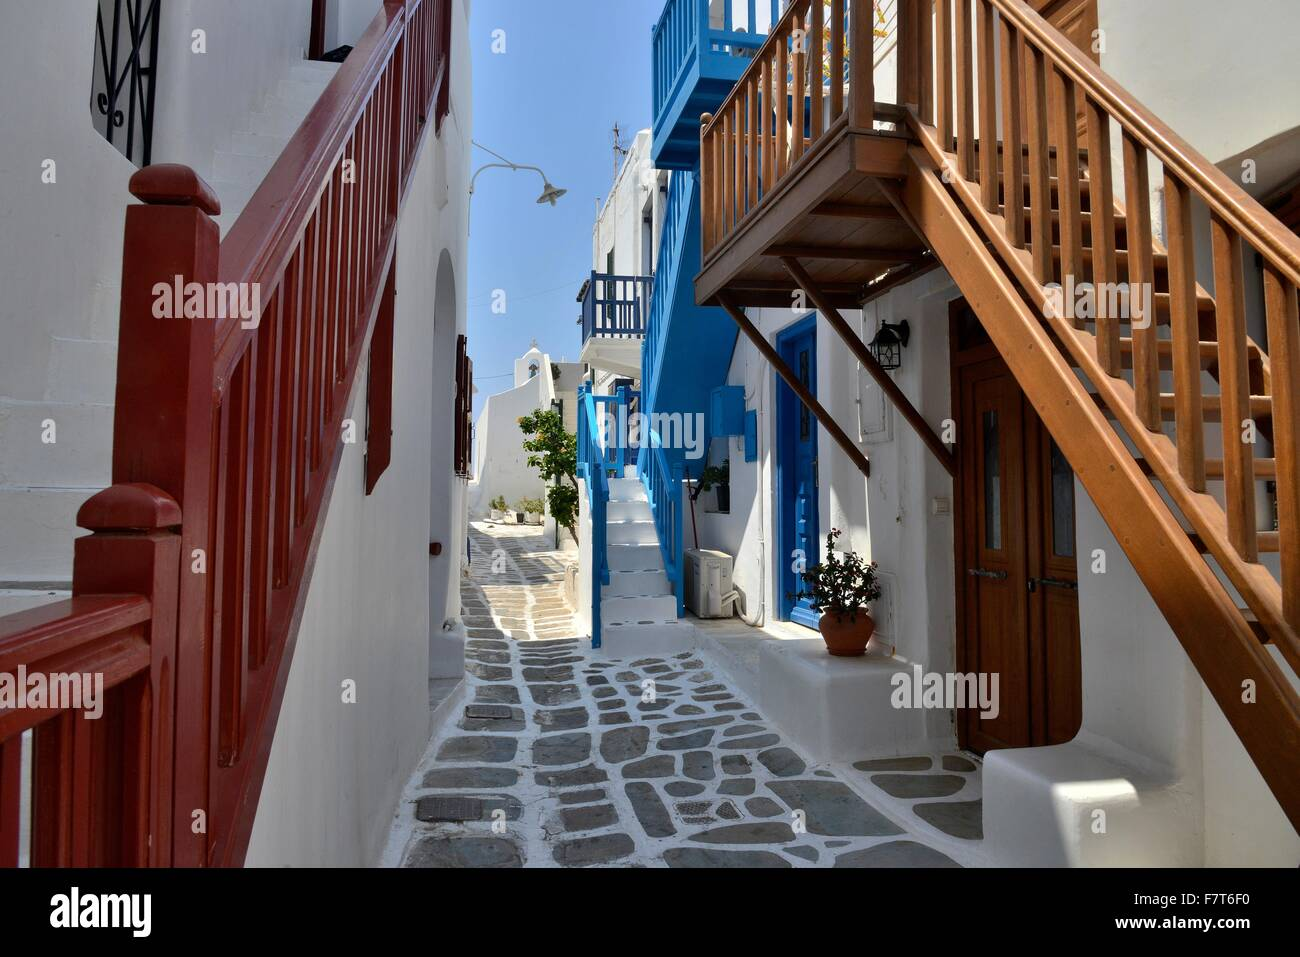 Narrow alley with staircases in the historic centre, Mykonos Town or Chora, Mykonos, Cyclades, Greece - Stock Image